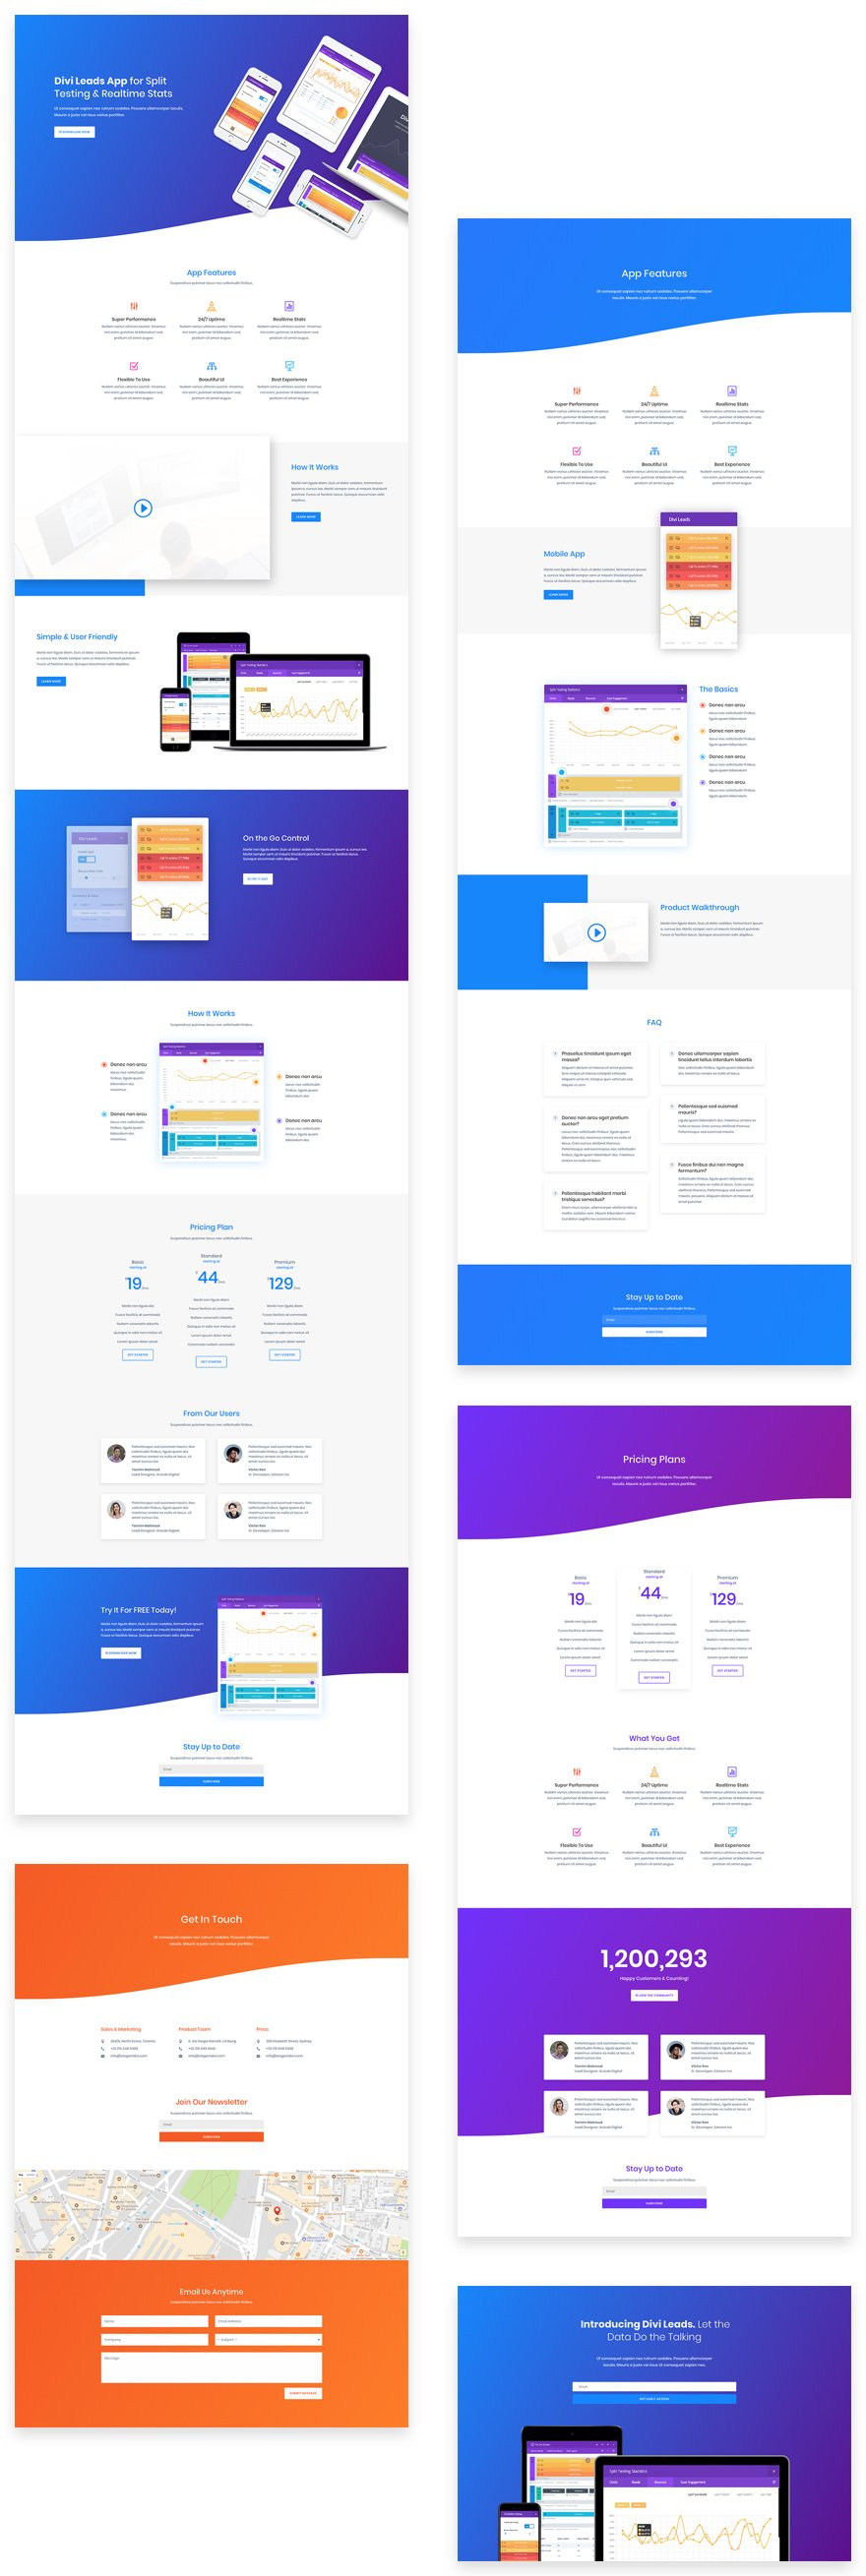 product-layout-pack-grid